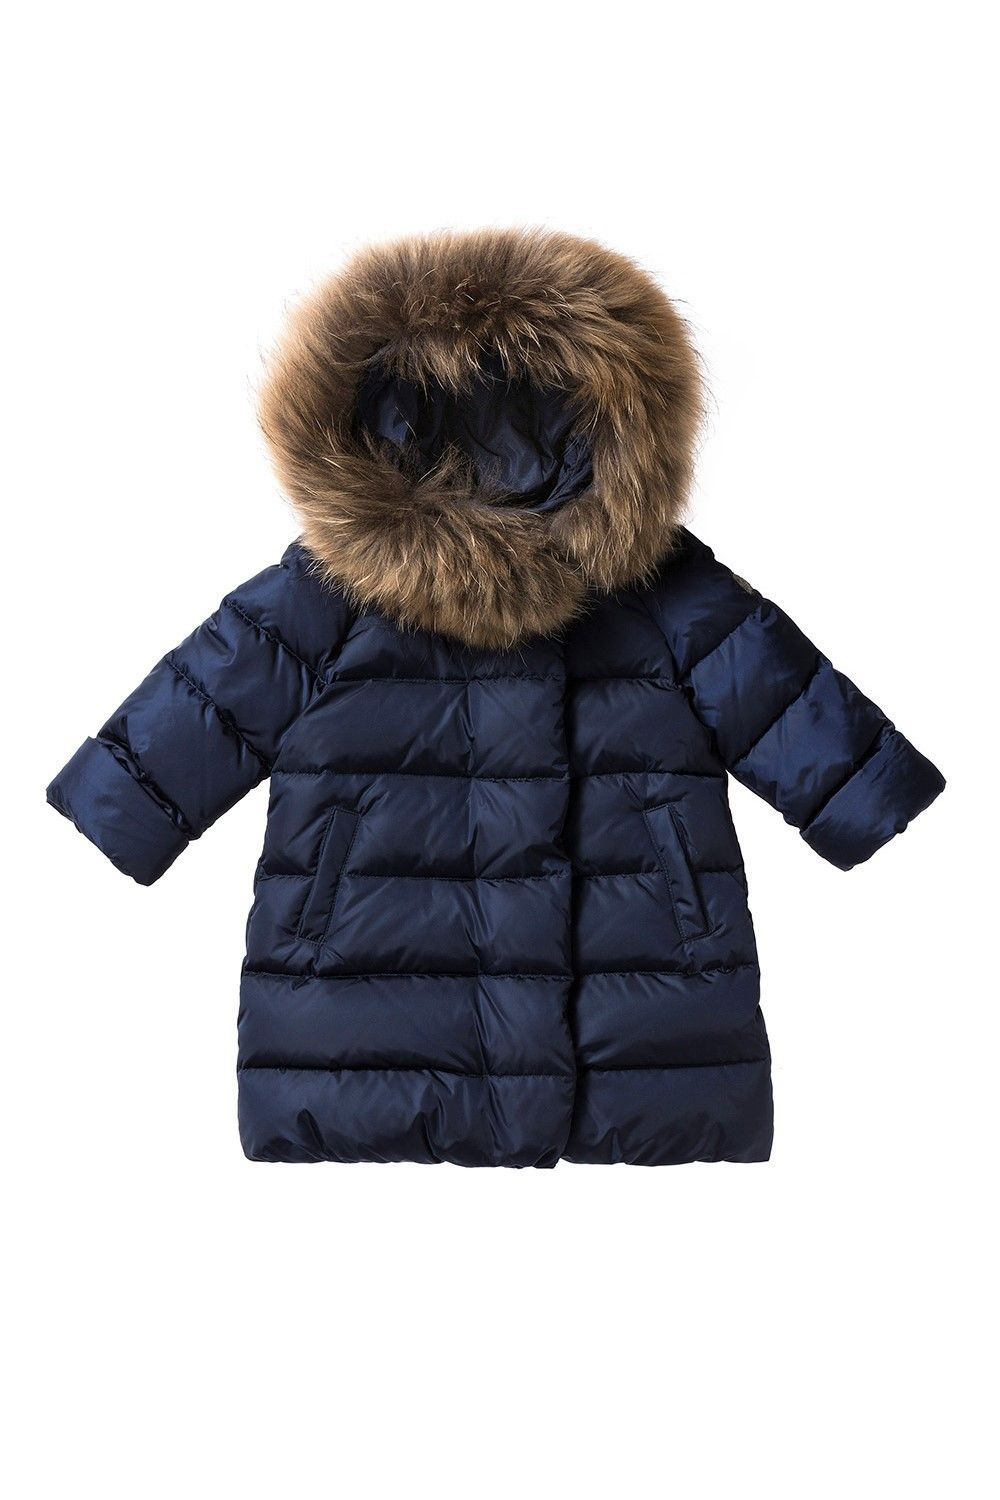 Italian Luxury Blue Down Filled Coat With Hood And Fur